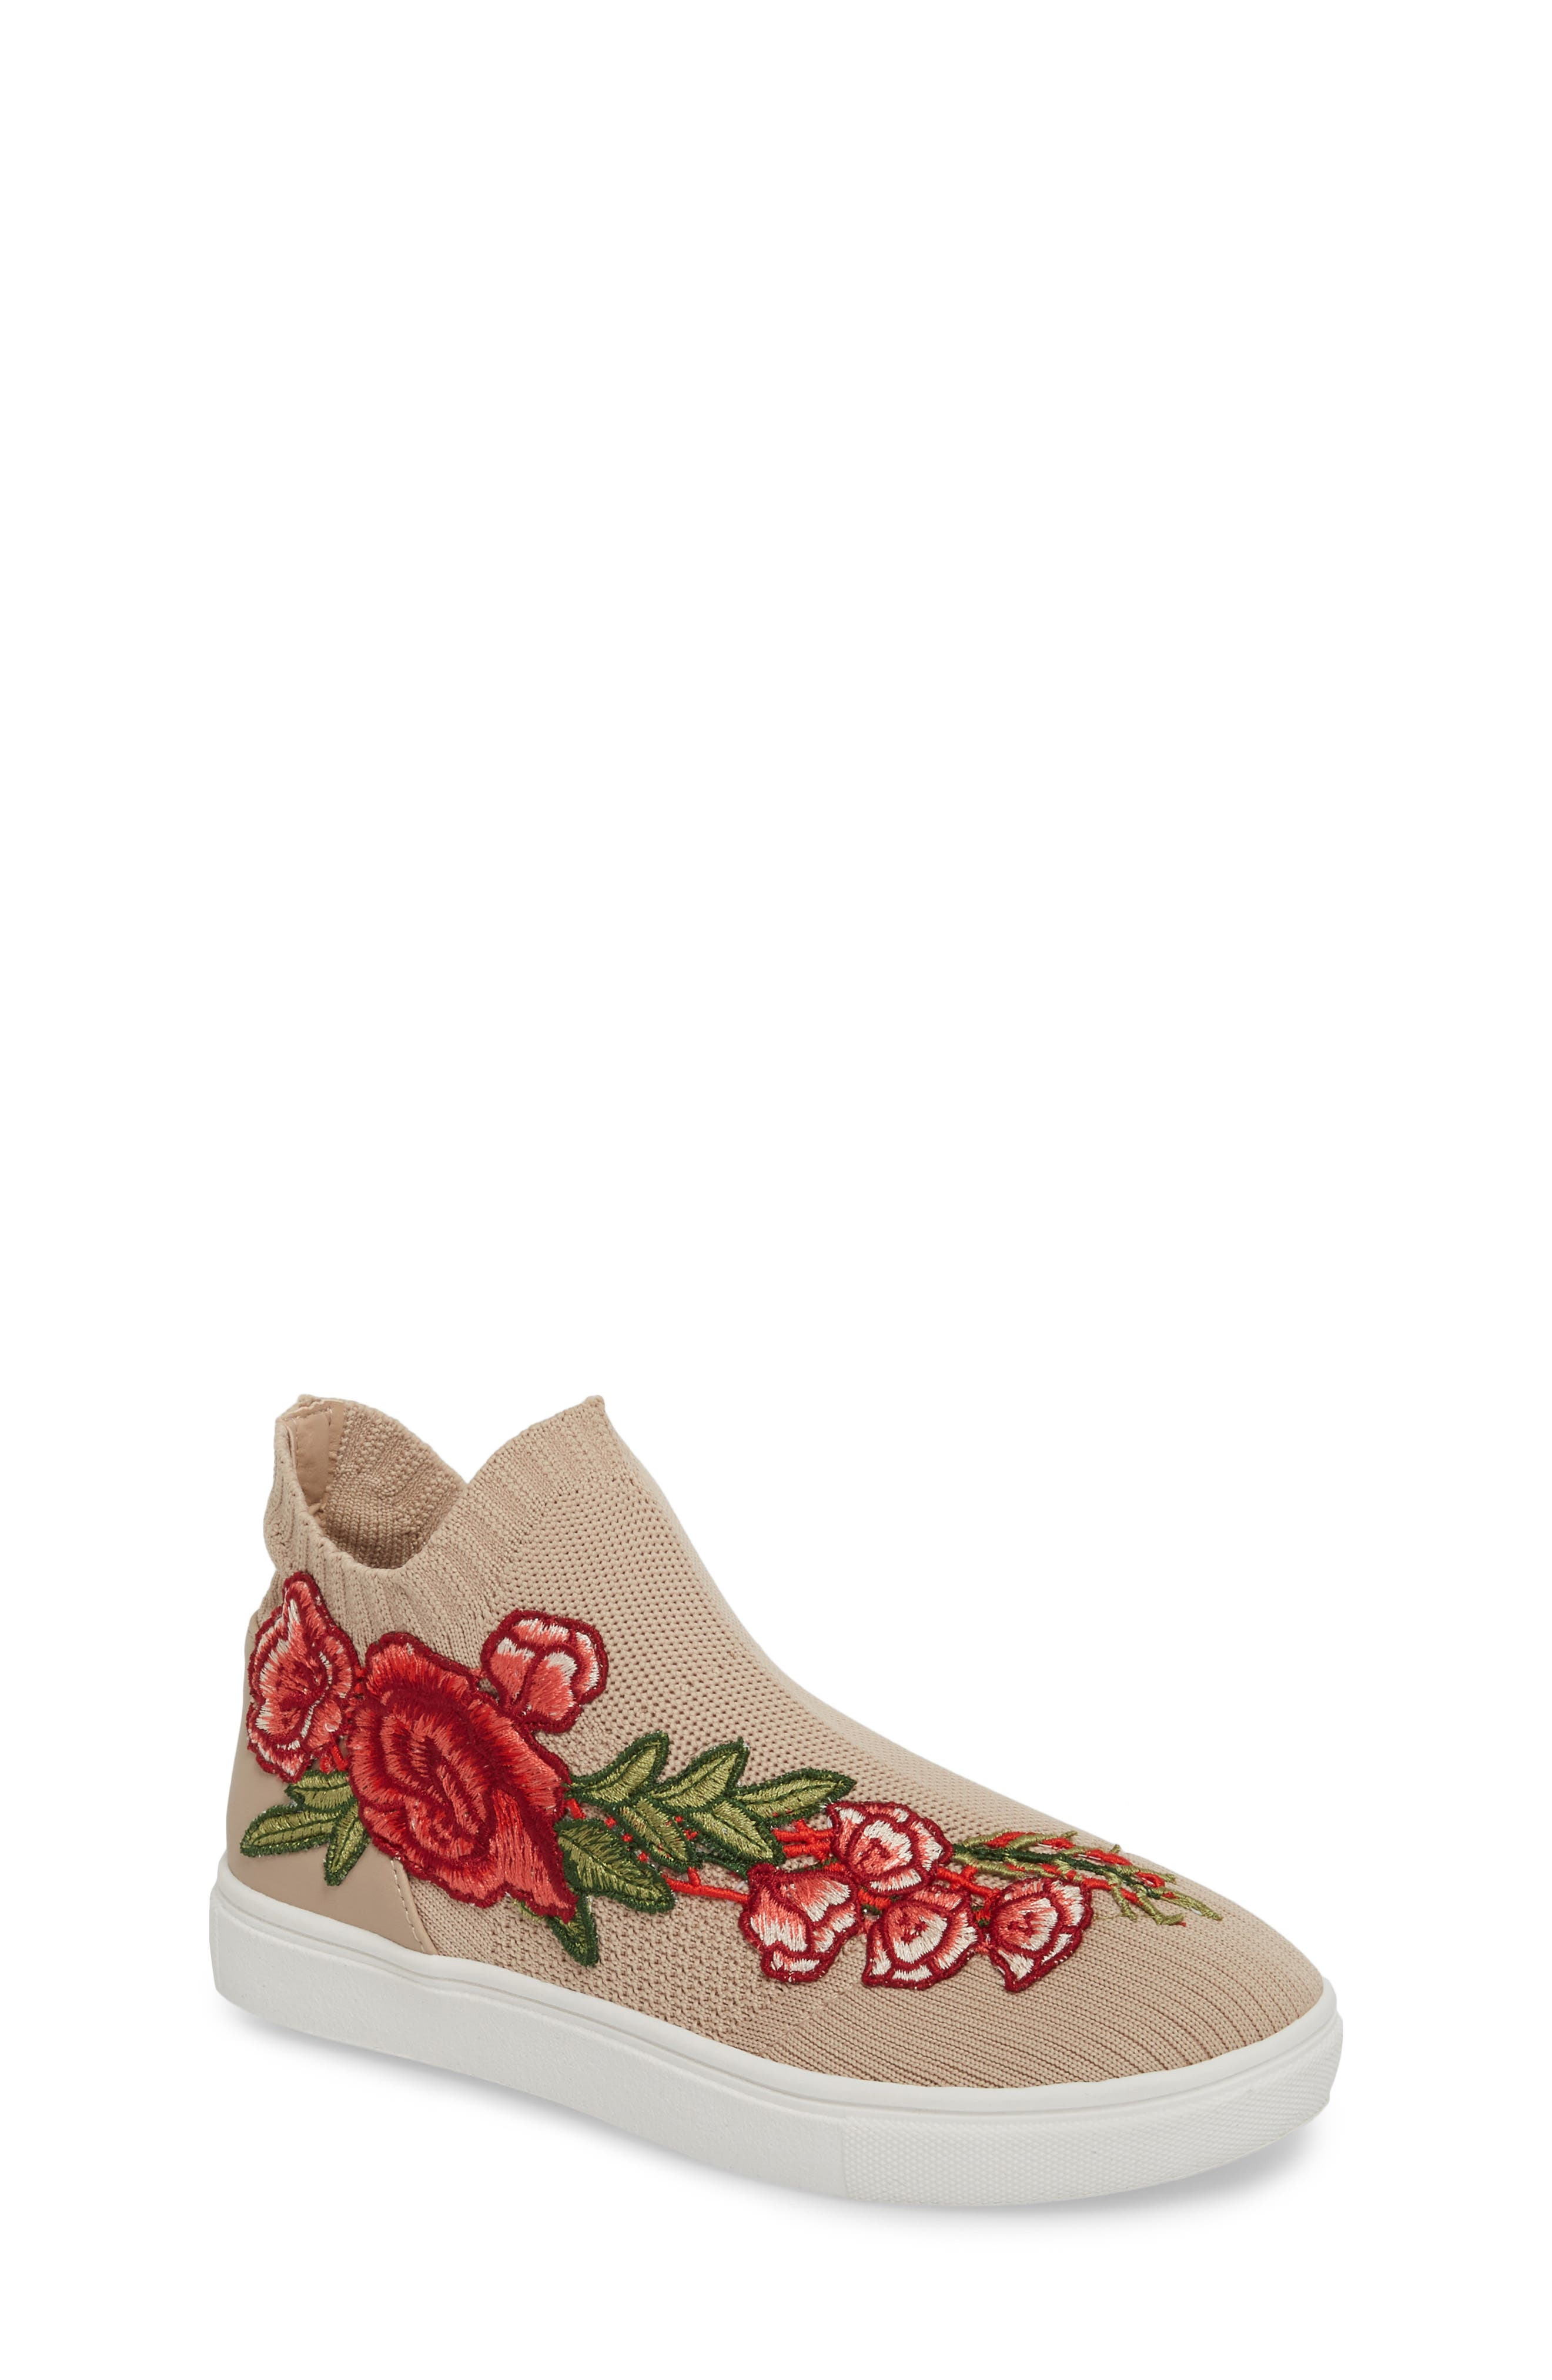 July Embroidered Knit Bootie,                             Main thumbnail 1, color,                             Blush